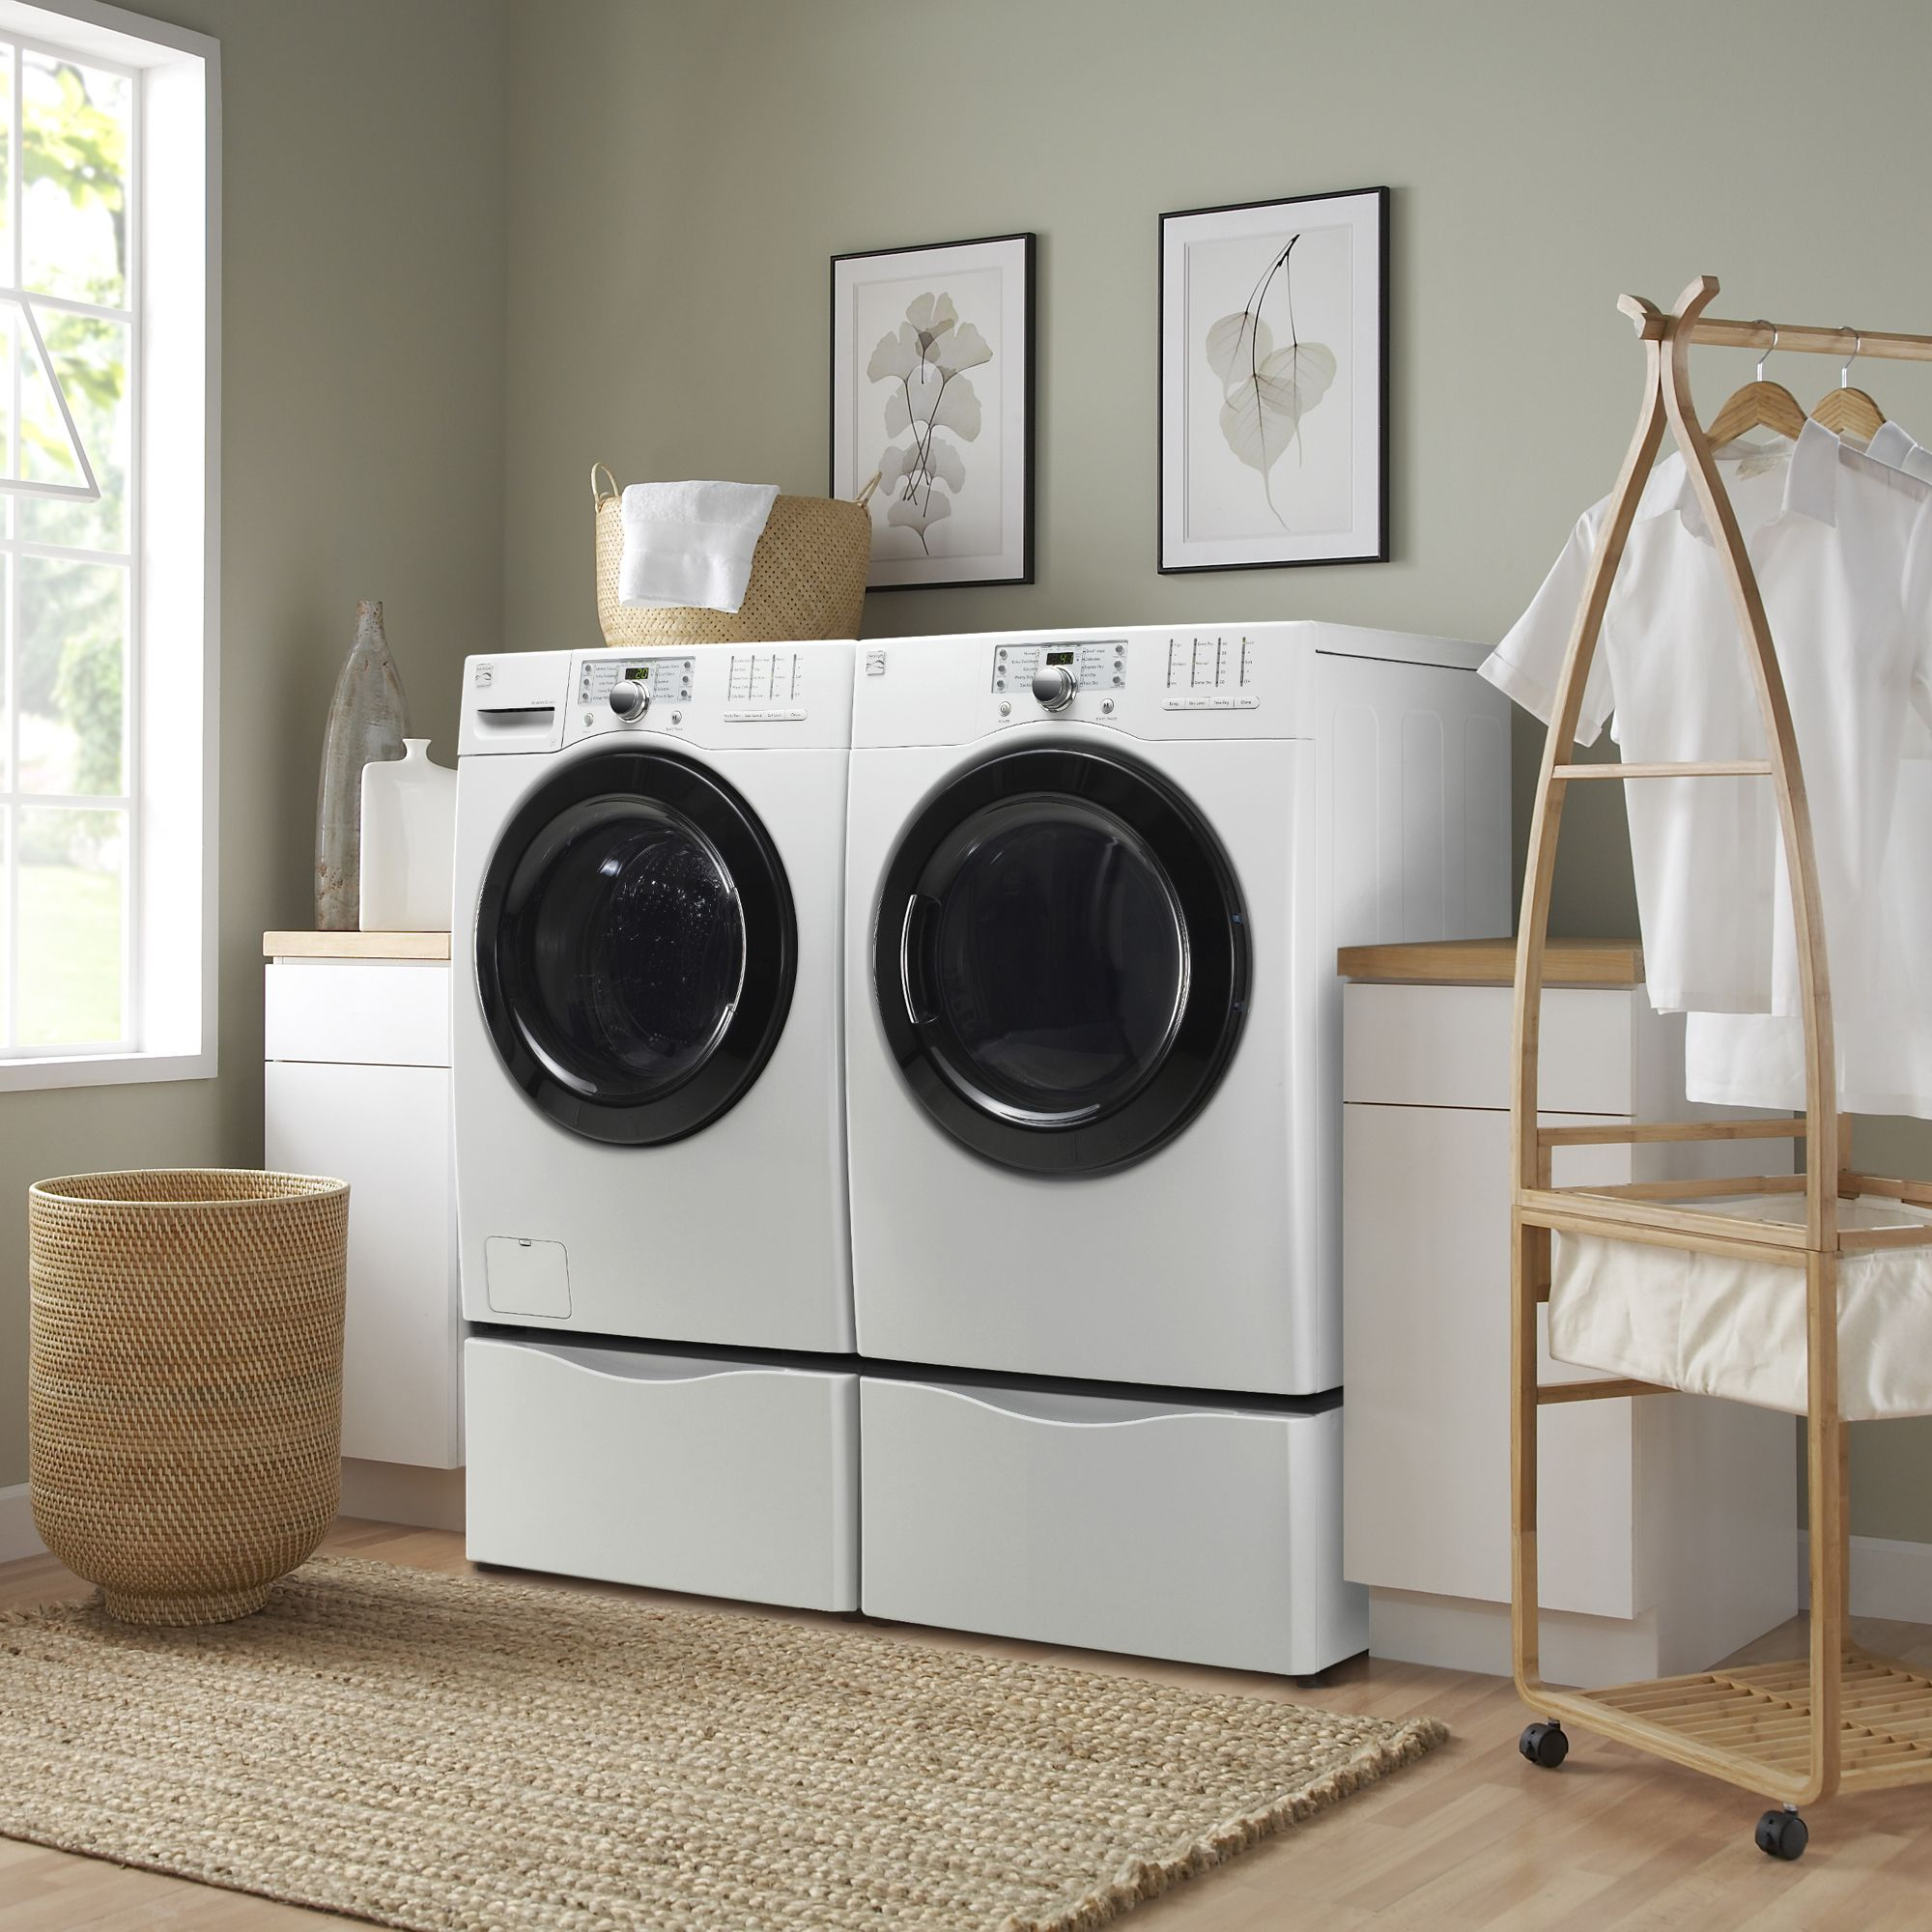 Kenmore Front-load Washing Machine 3.6 cubic feet